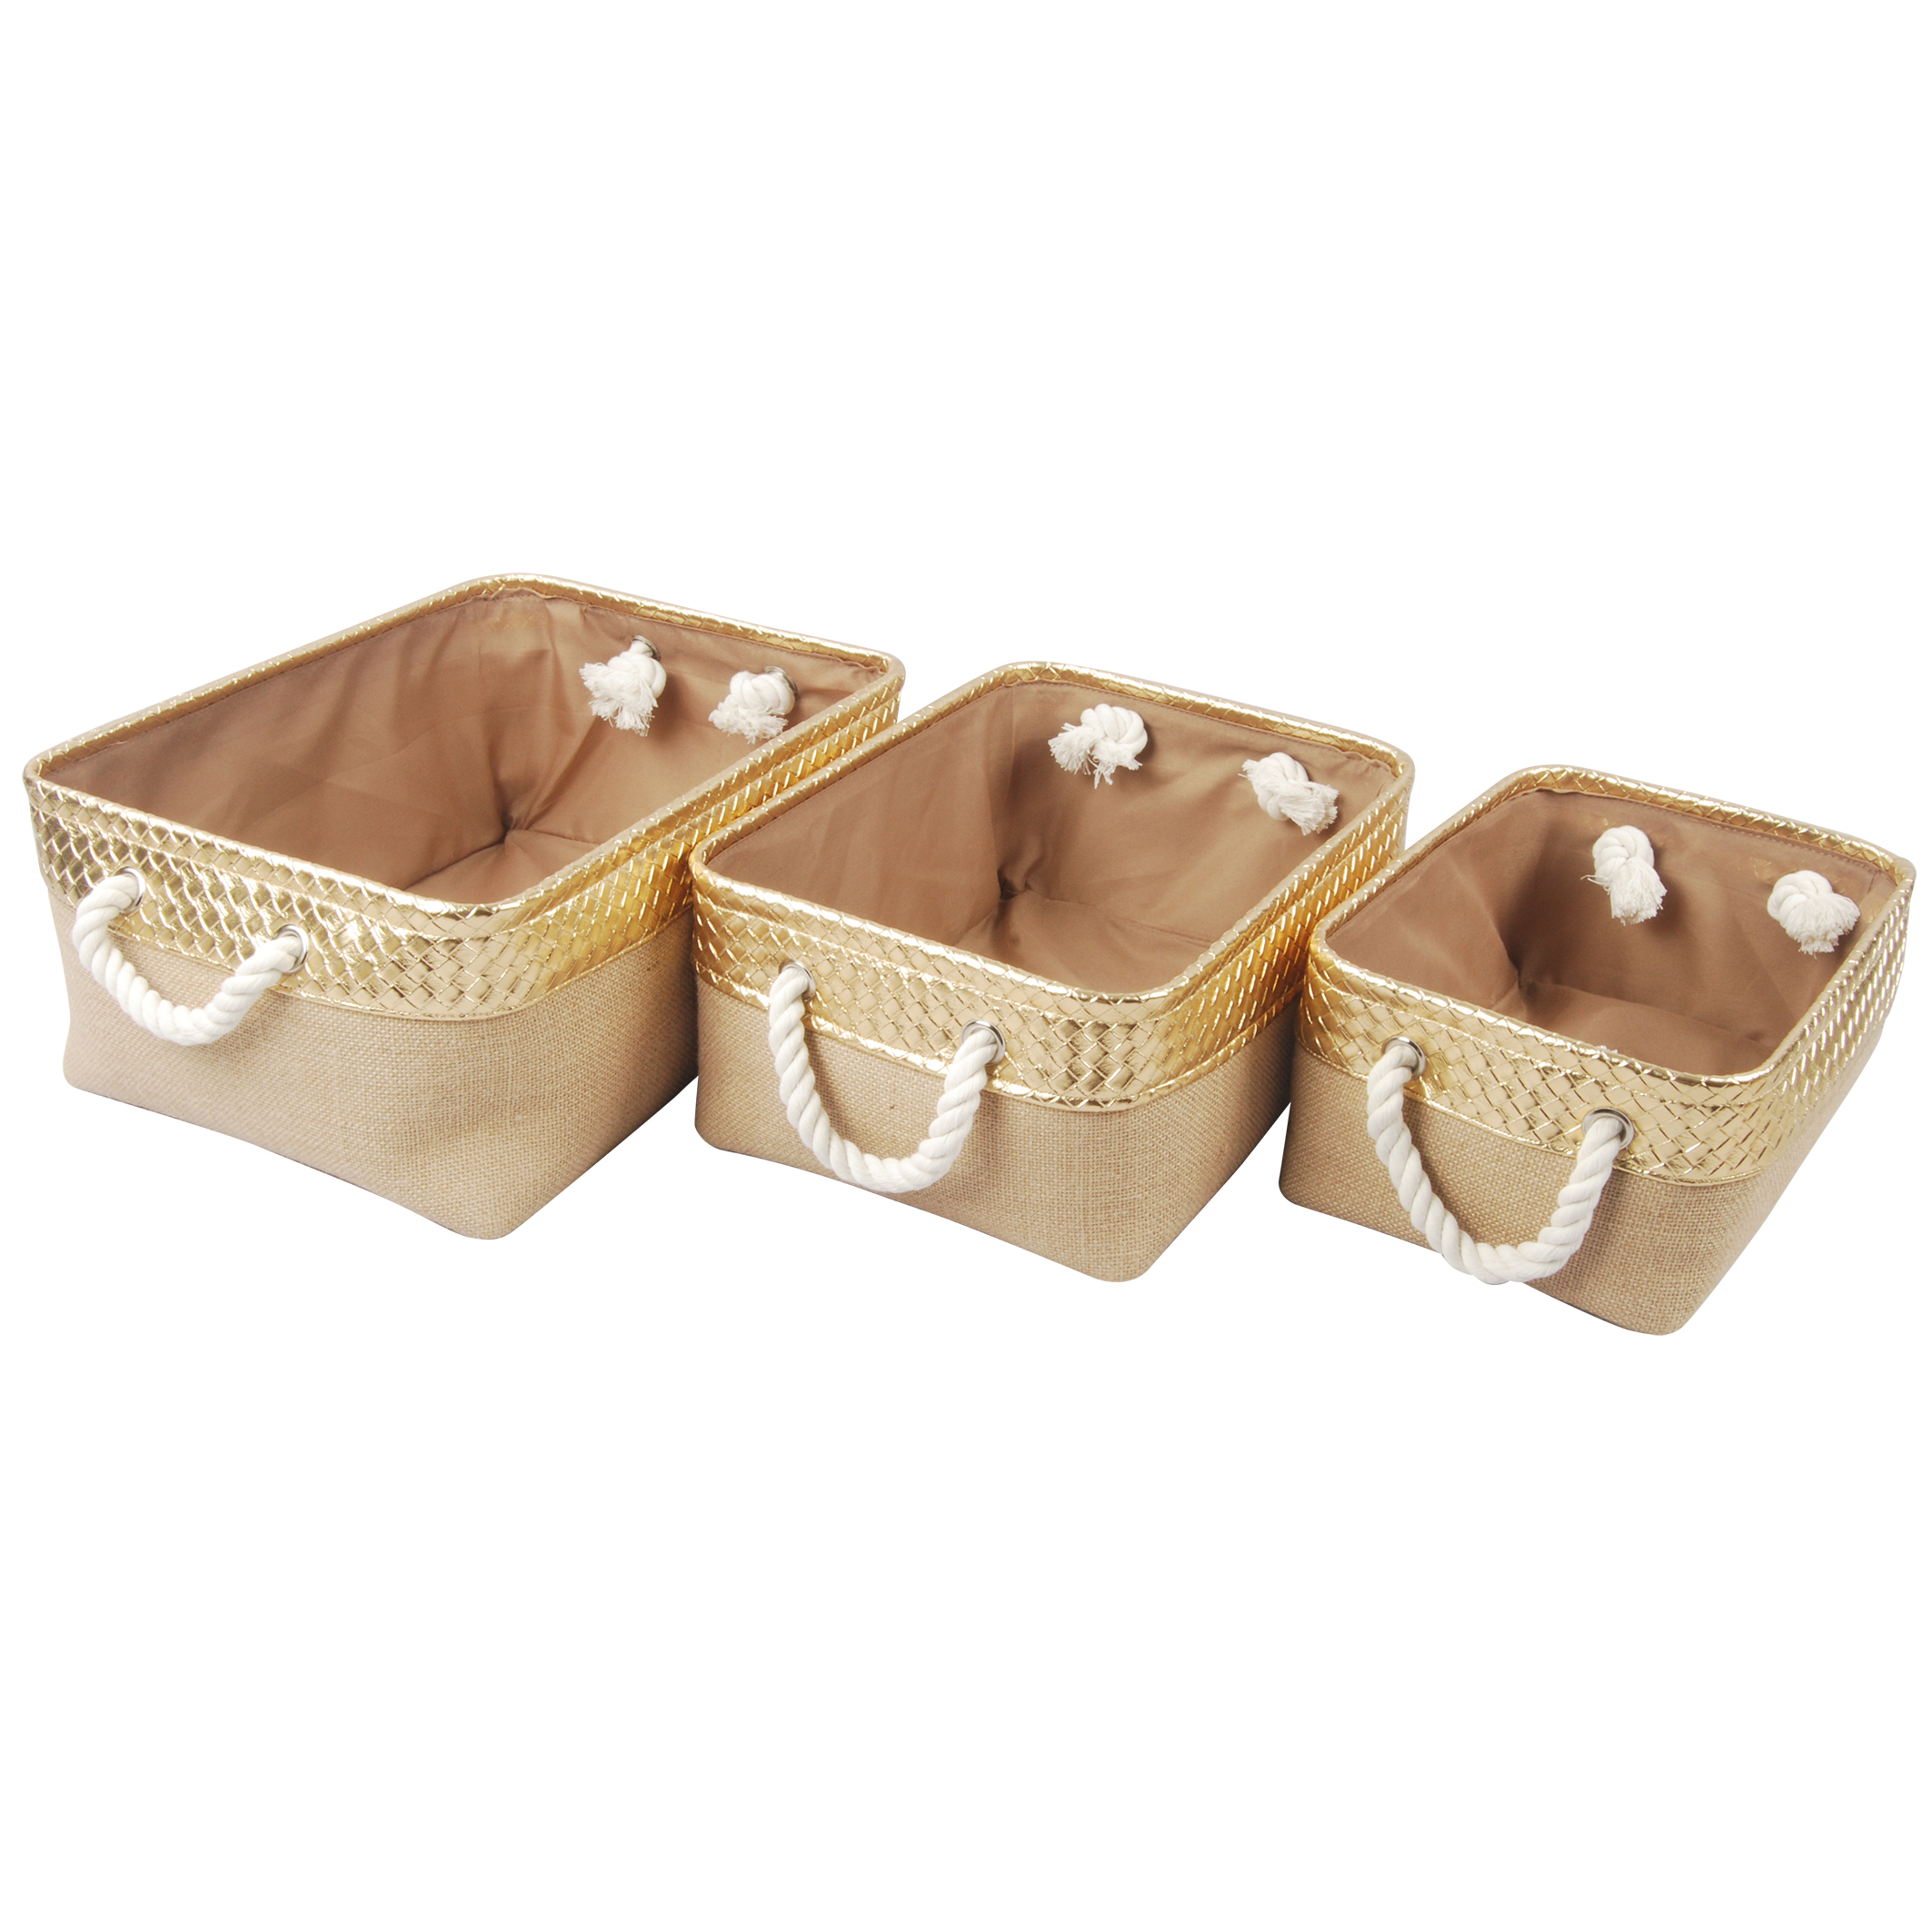 A&B Home Alcott Jute Nested Baskets, Gold & Natural, Set of 3